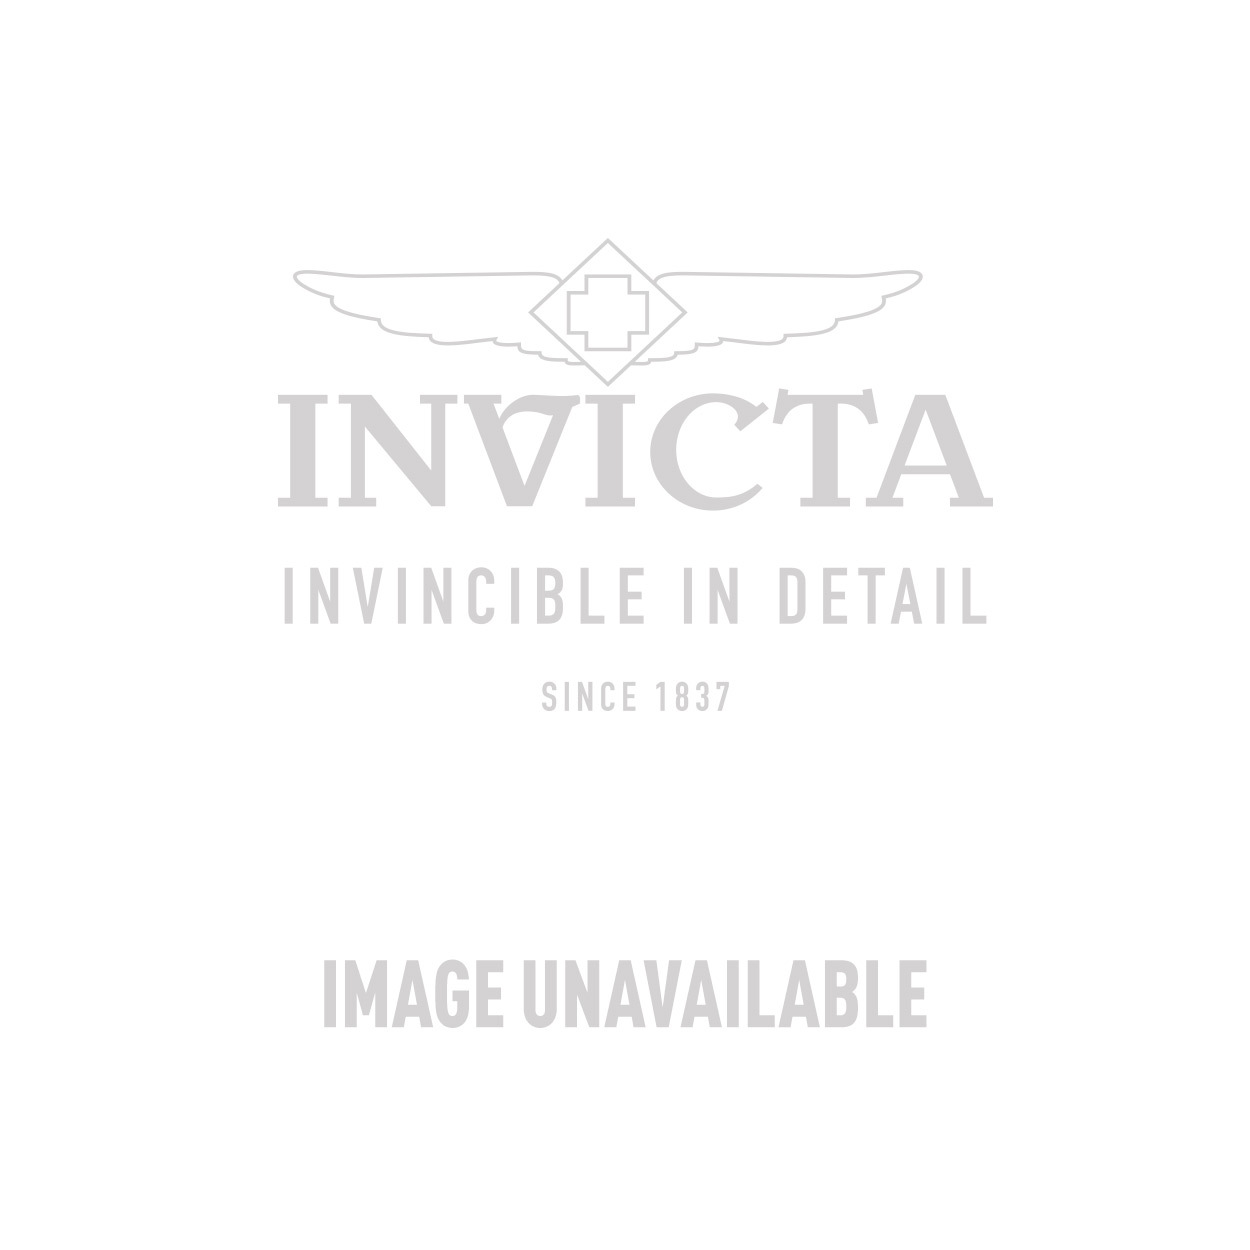 Invicta Specialty Swiss Movement Quartz Watch - Gold case with Black tone Leather band - Model 14330